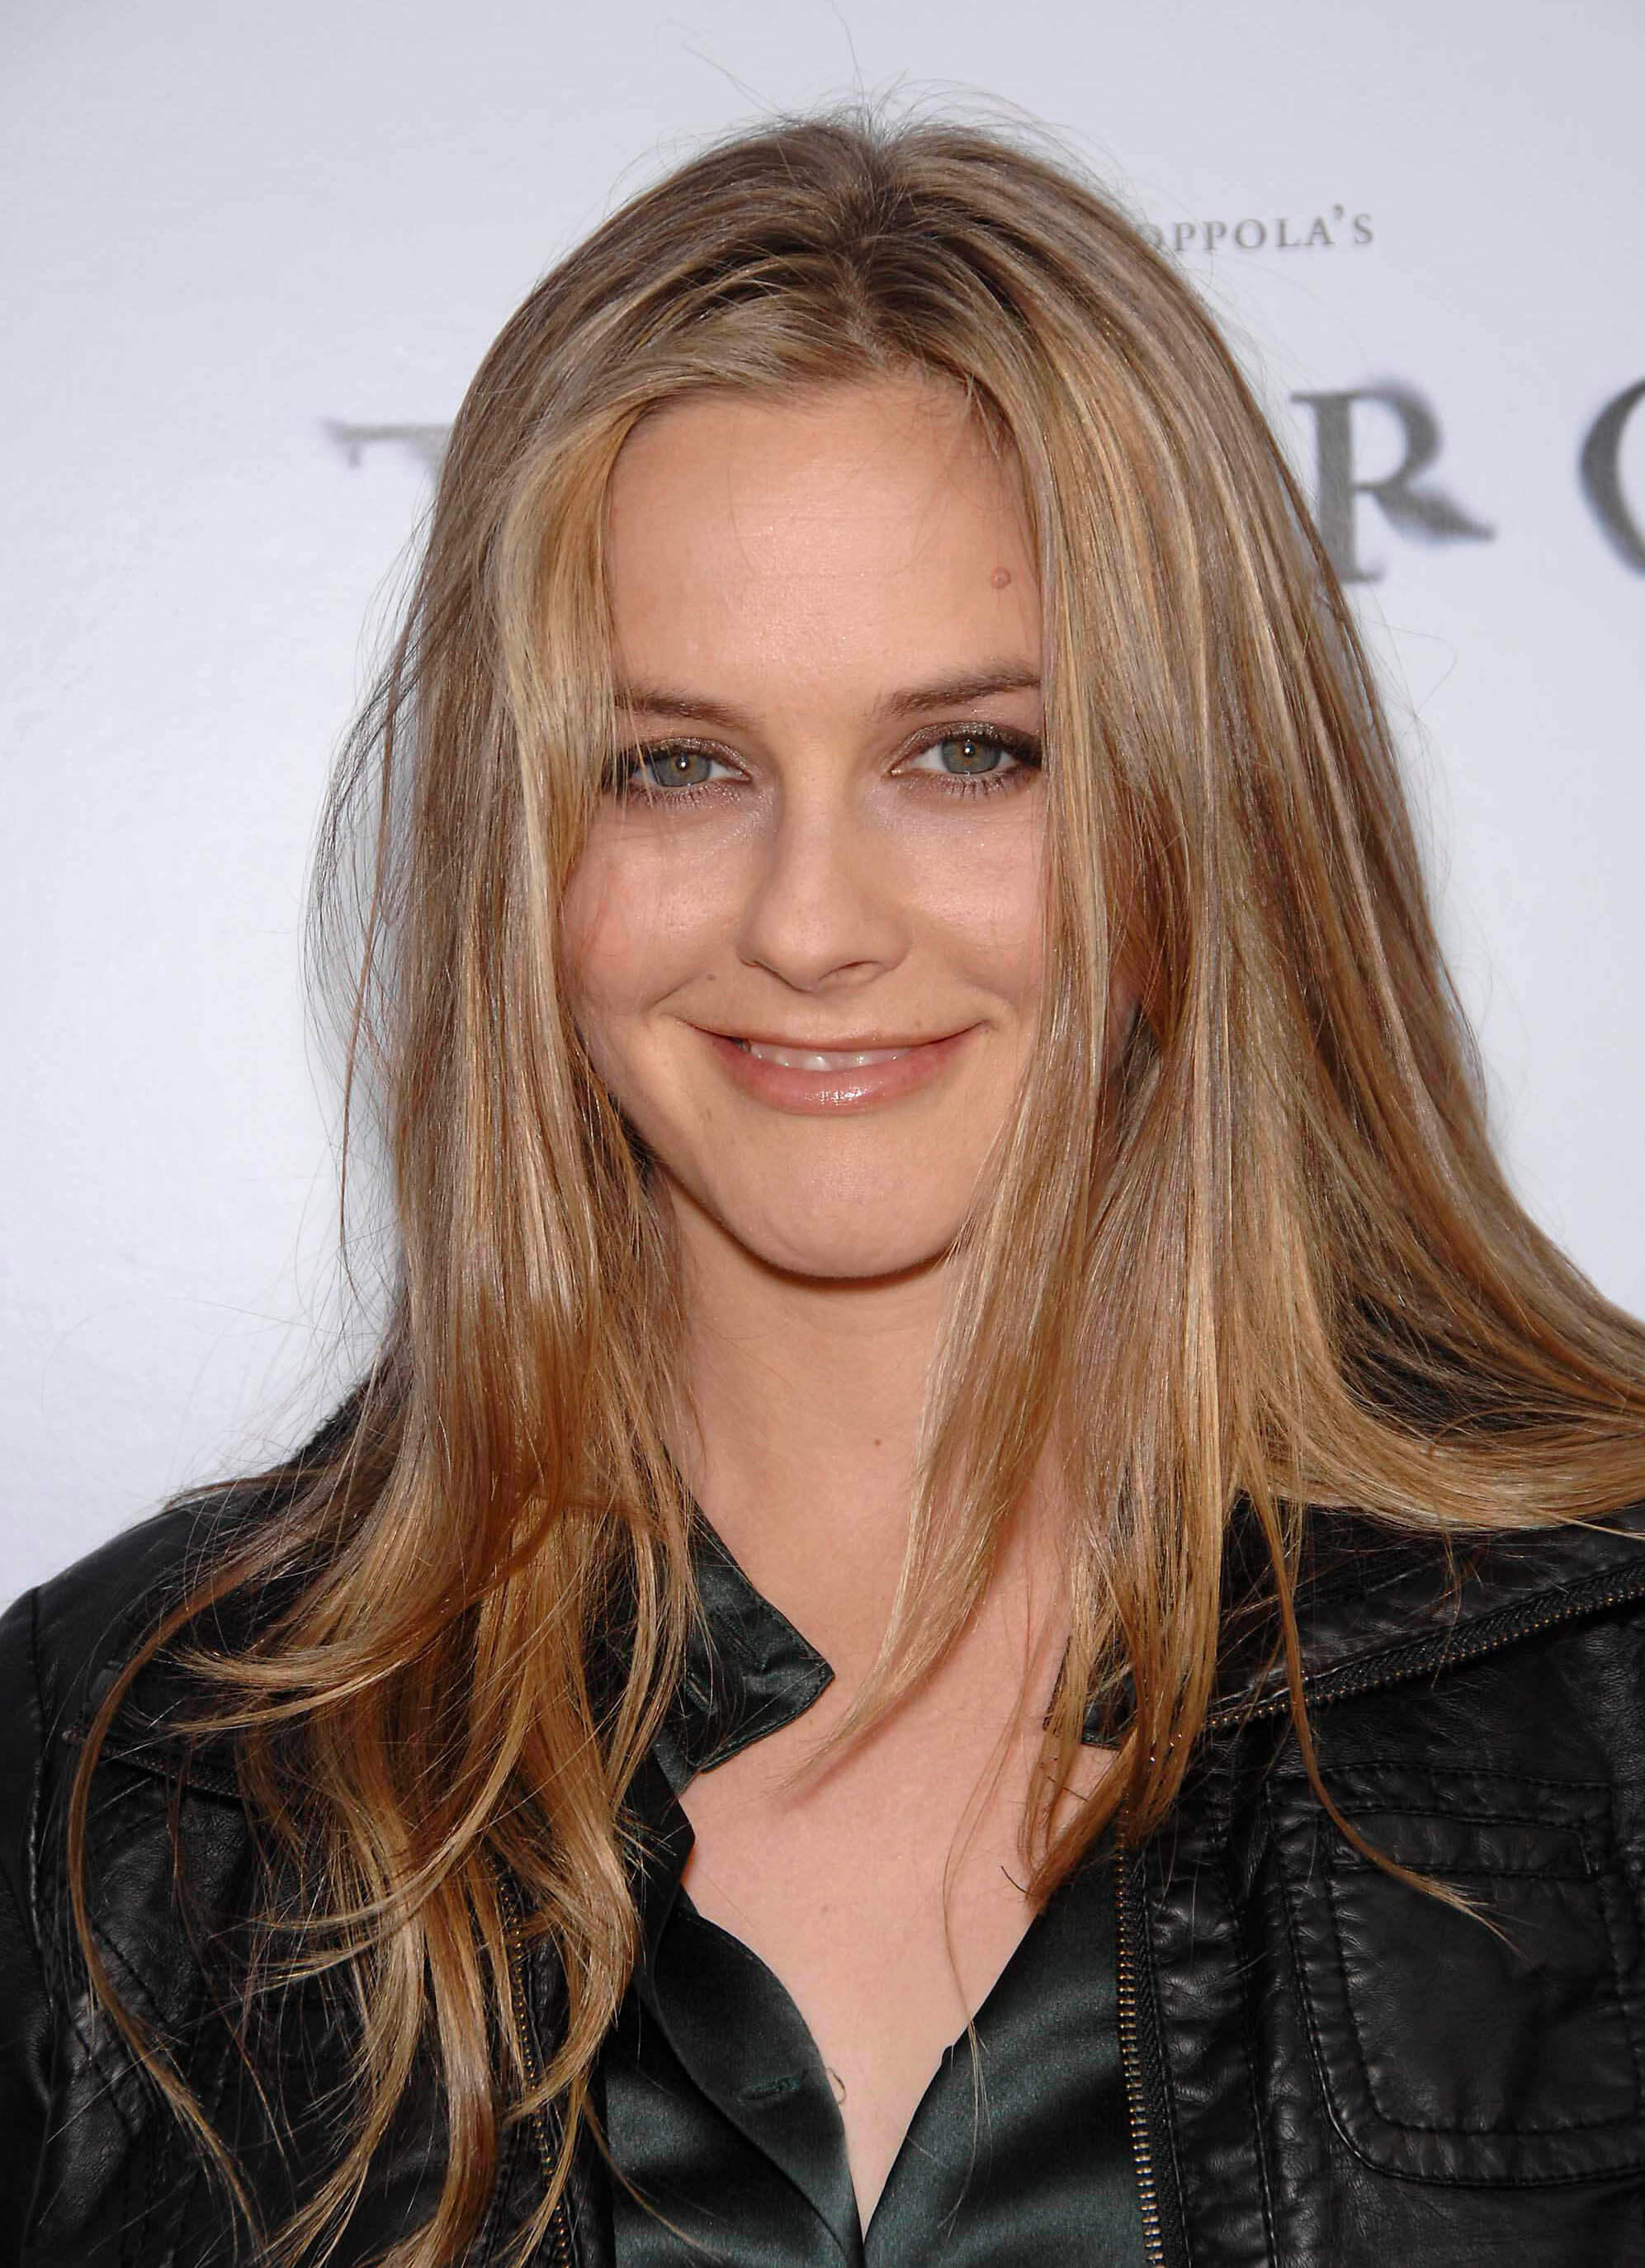 Pictures of Alicia Silverstone Picture 311395  Pictures Of Celebrities